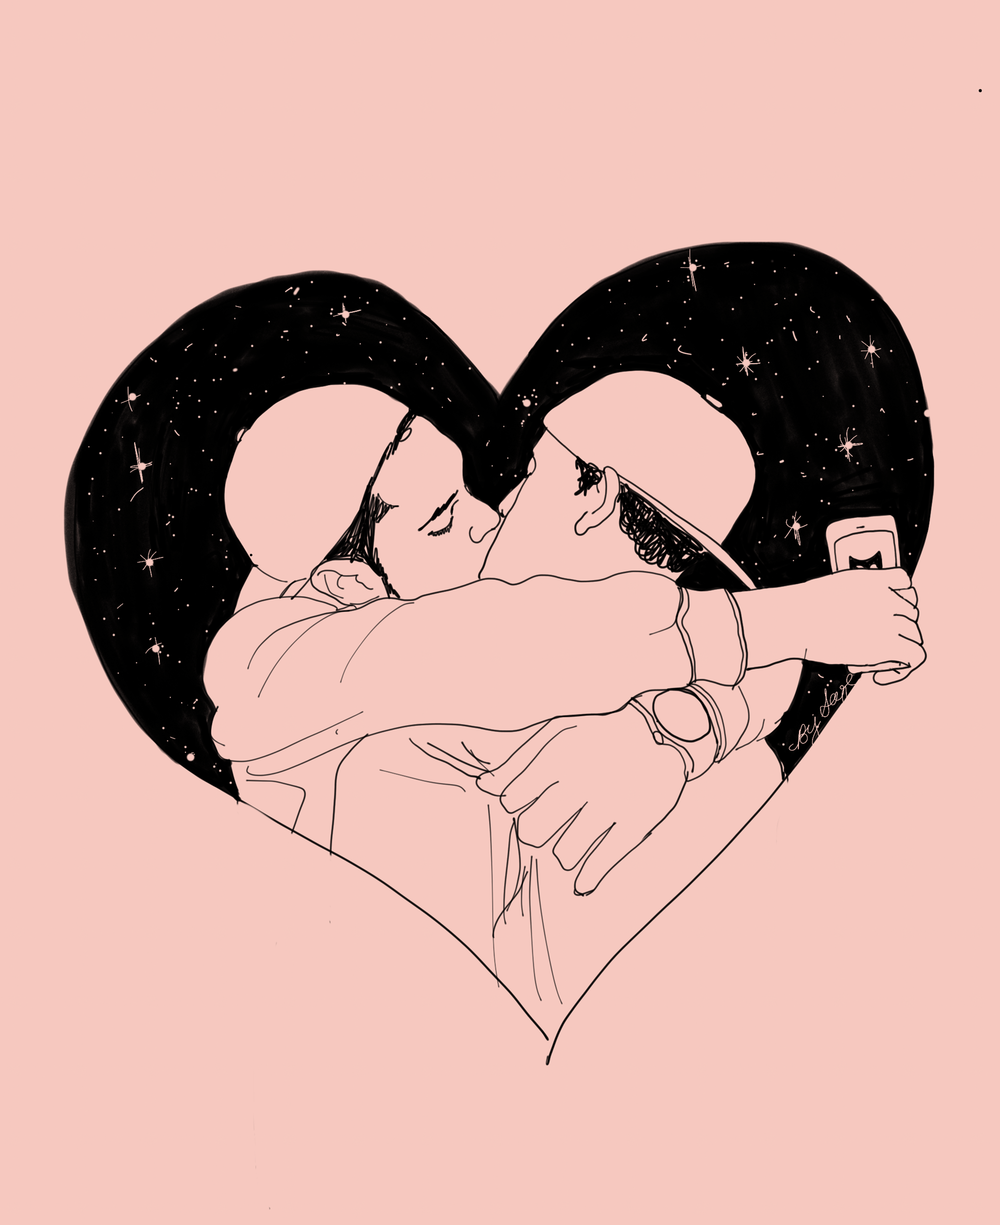 Love in a Hopeless Place, personal essay series for InStyle.com, February 2017  Illustrations by Rachel Moranis